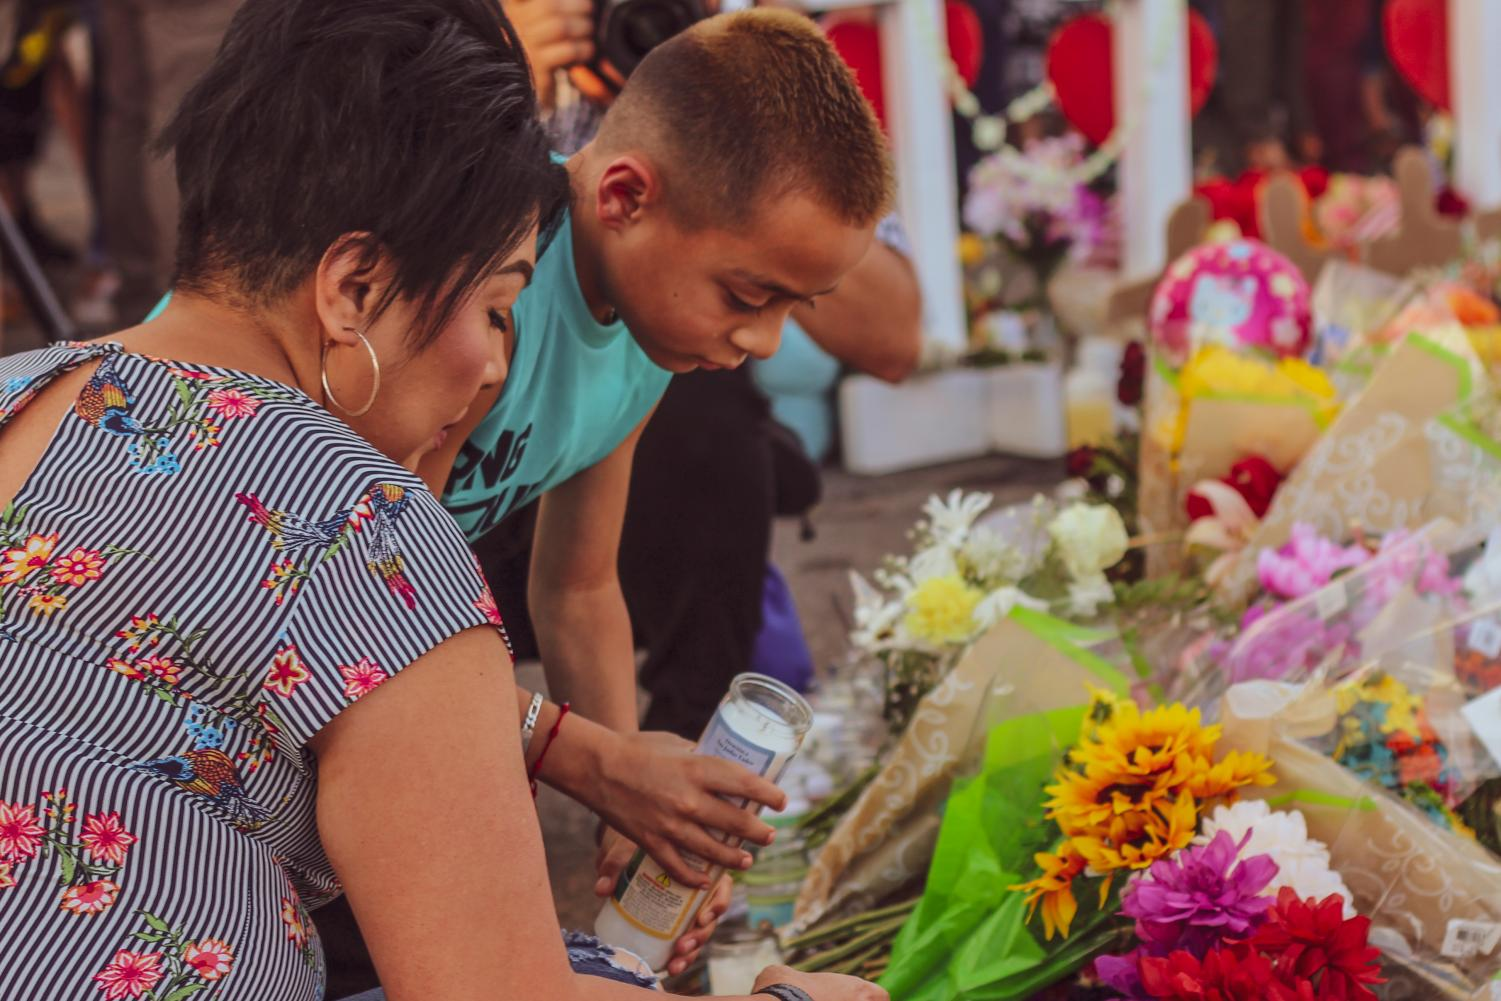 The community pay their respects for the victims at Cielo Vista Walmart, Monday August 6th.